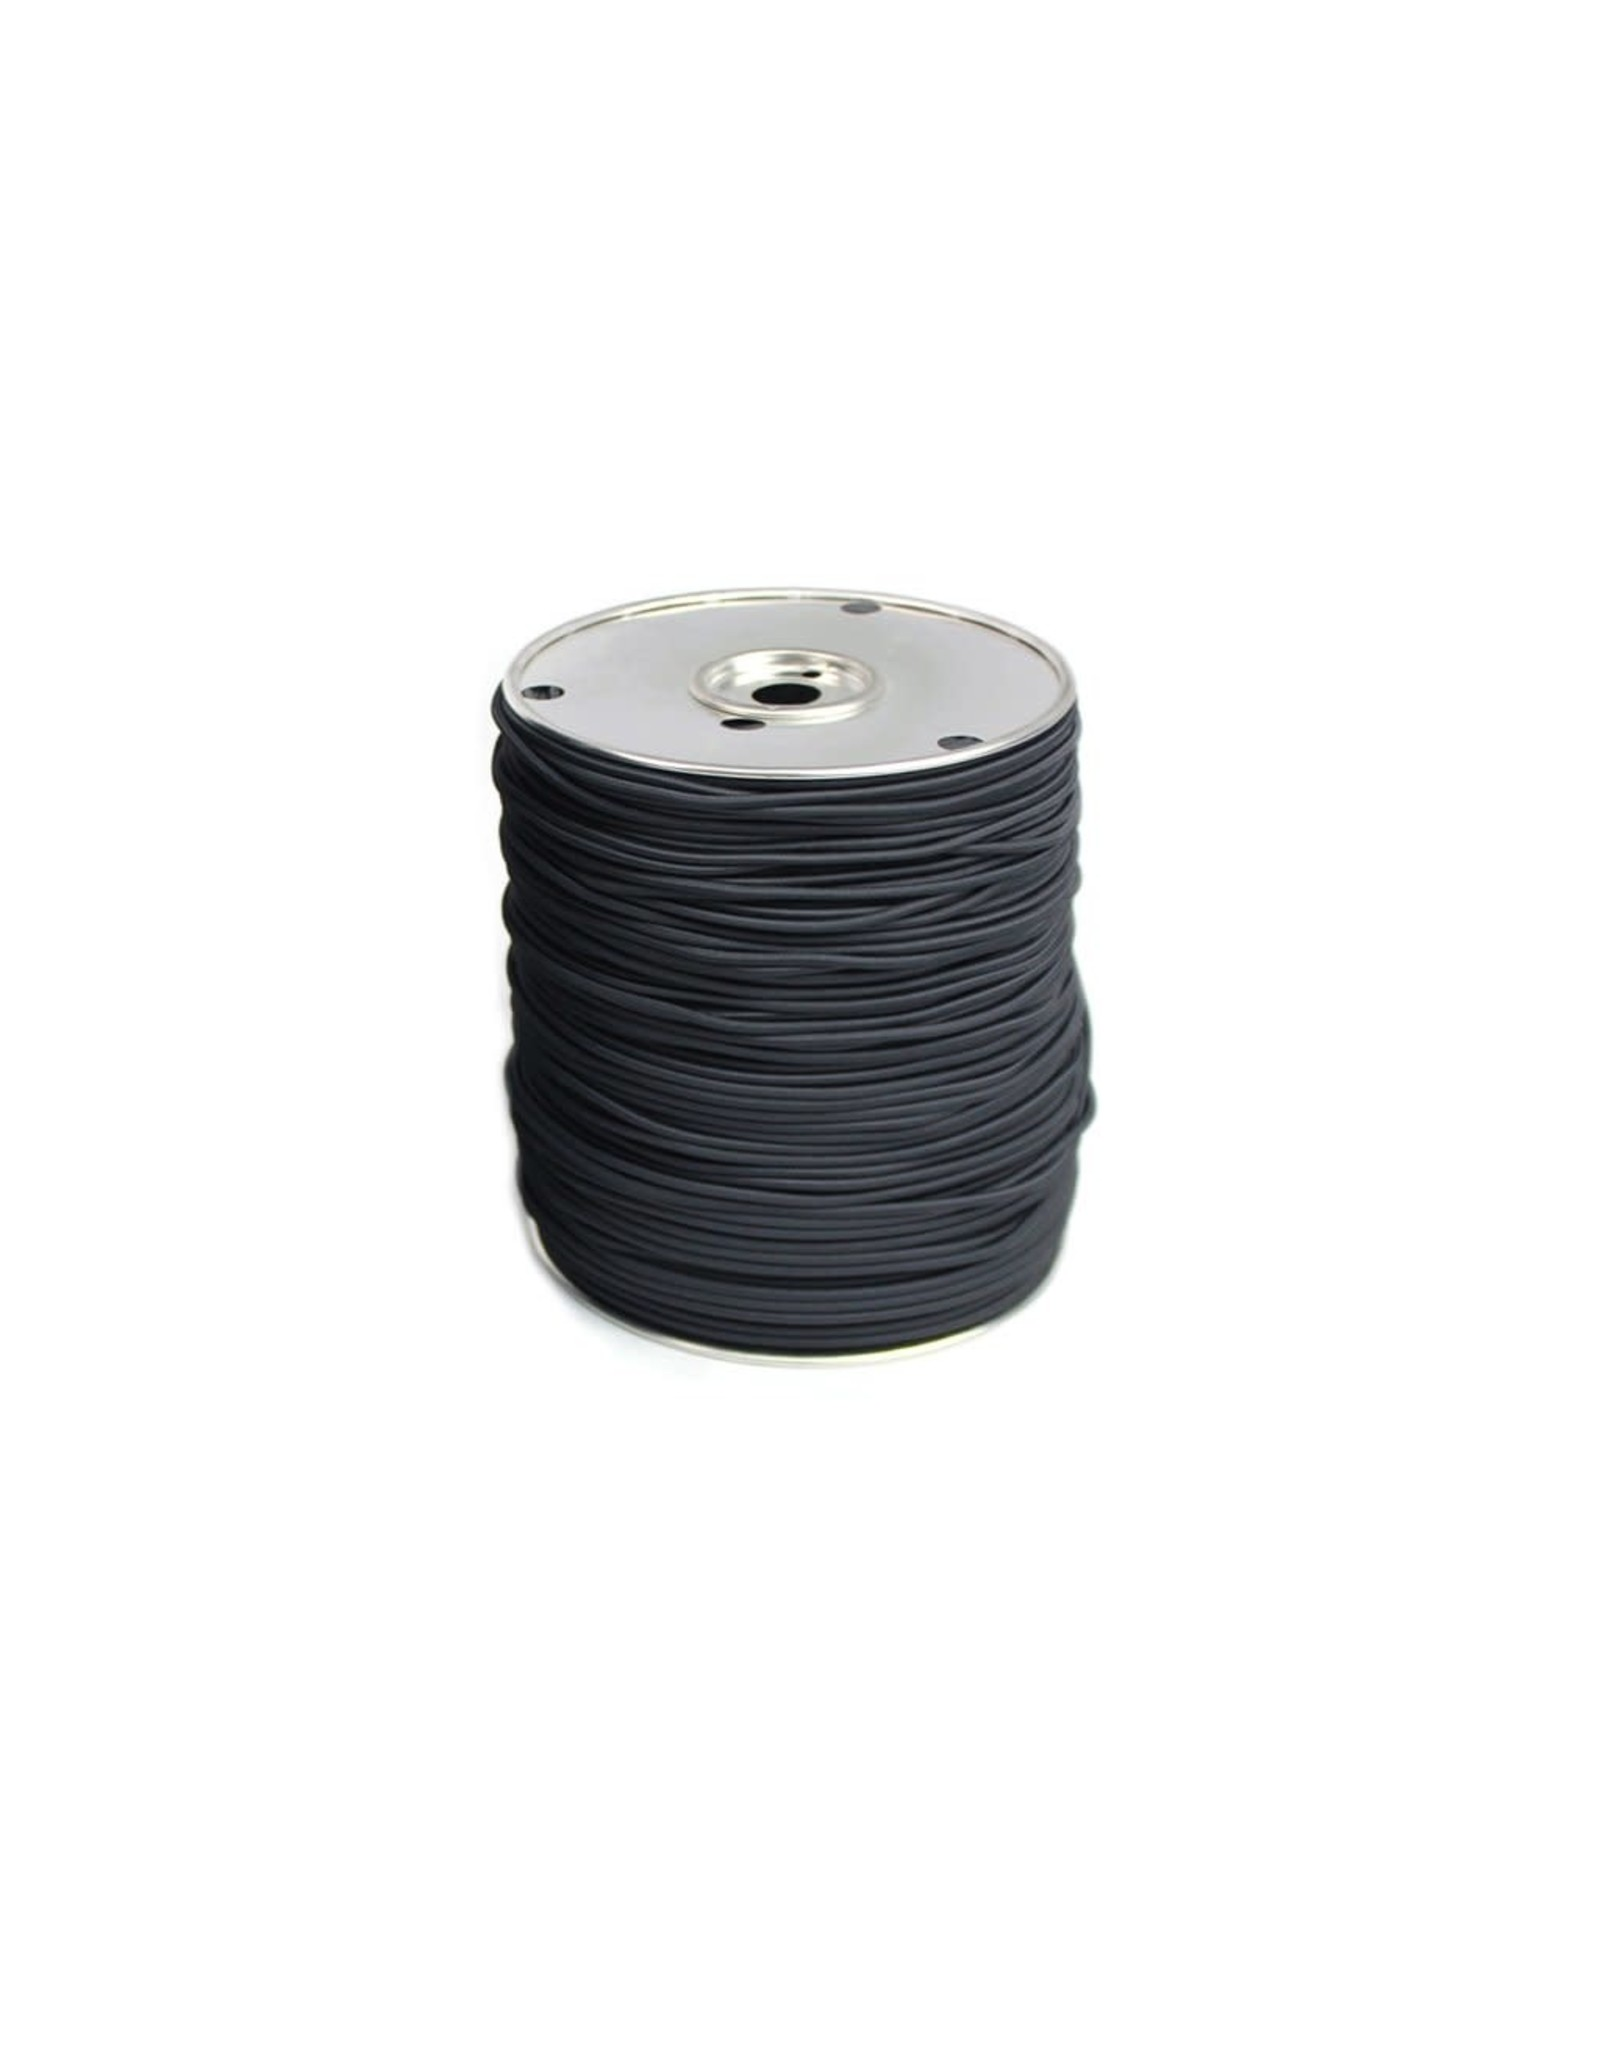 Atlan Atlan 3.2 mm round elastic cord (Bungee) sold by feets